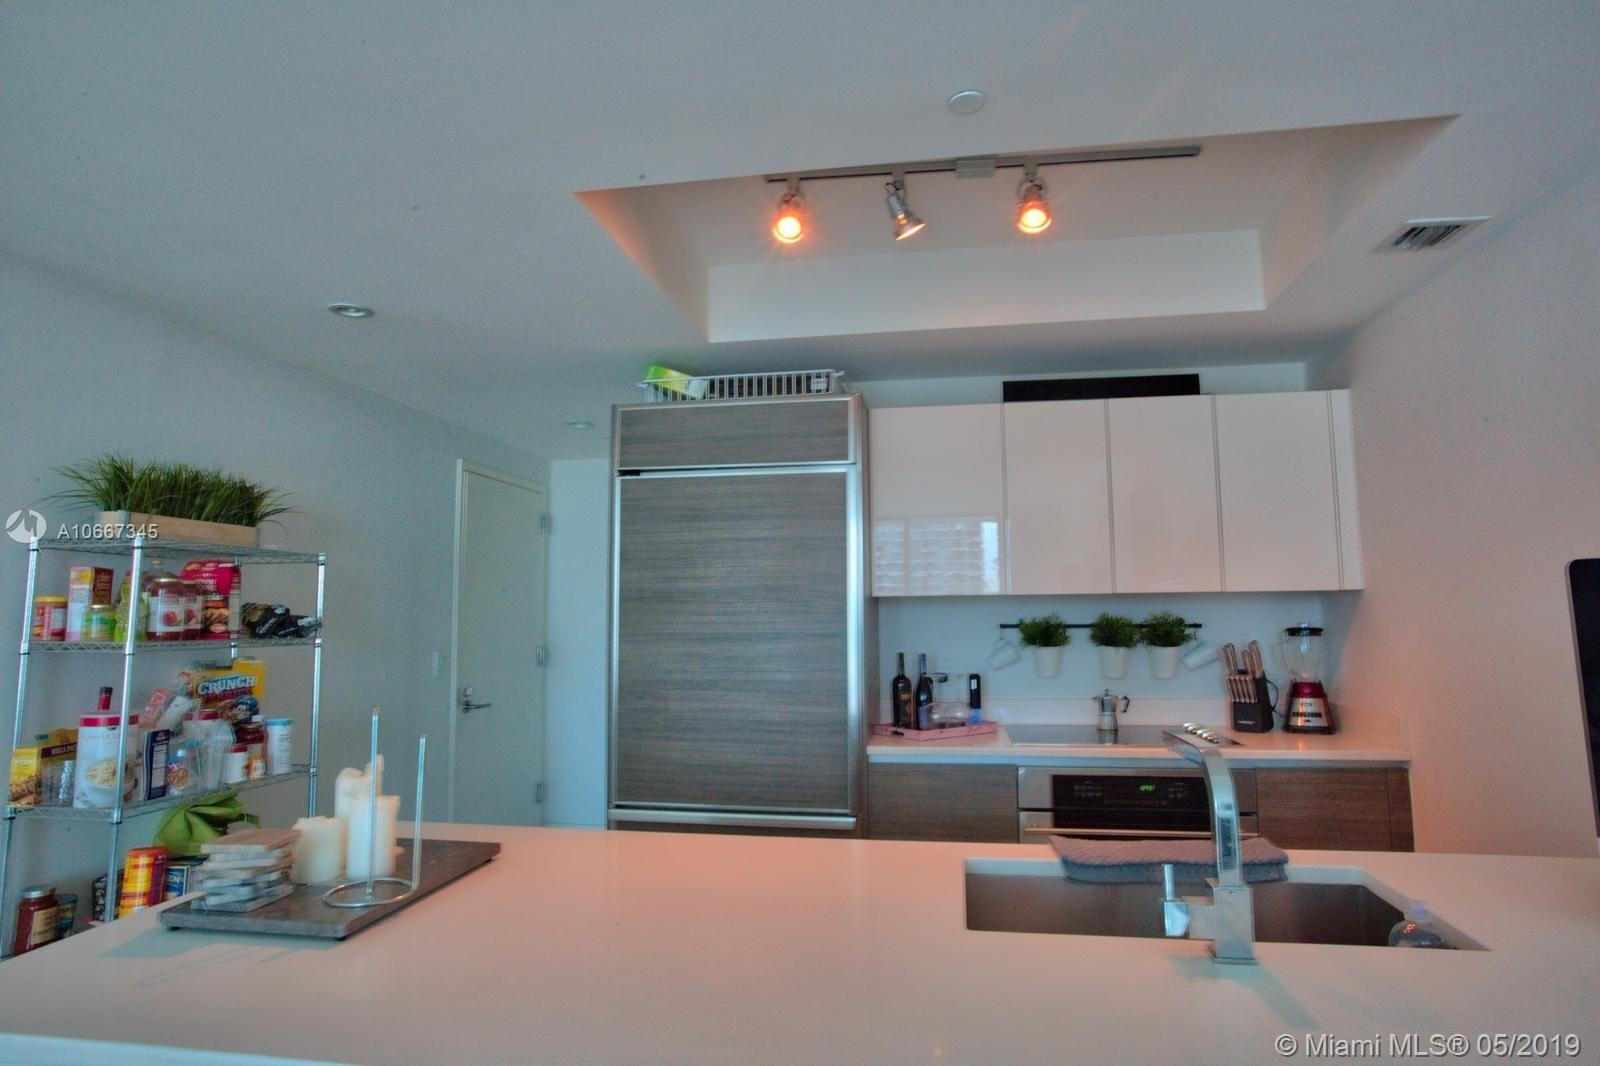 Stylish 2 bedrooms, 2 bath unit, porcelain floors throughout, Italian cabinets, integrating the refrigerator and dishwasher, creating a balanced seamless look, in exciting and electrifying Brickell.